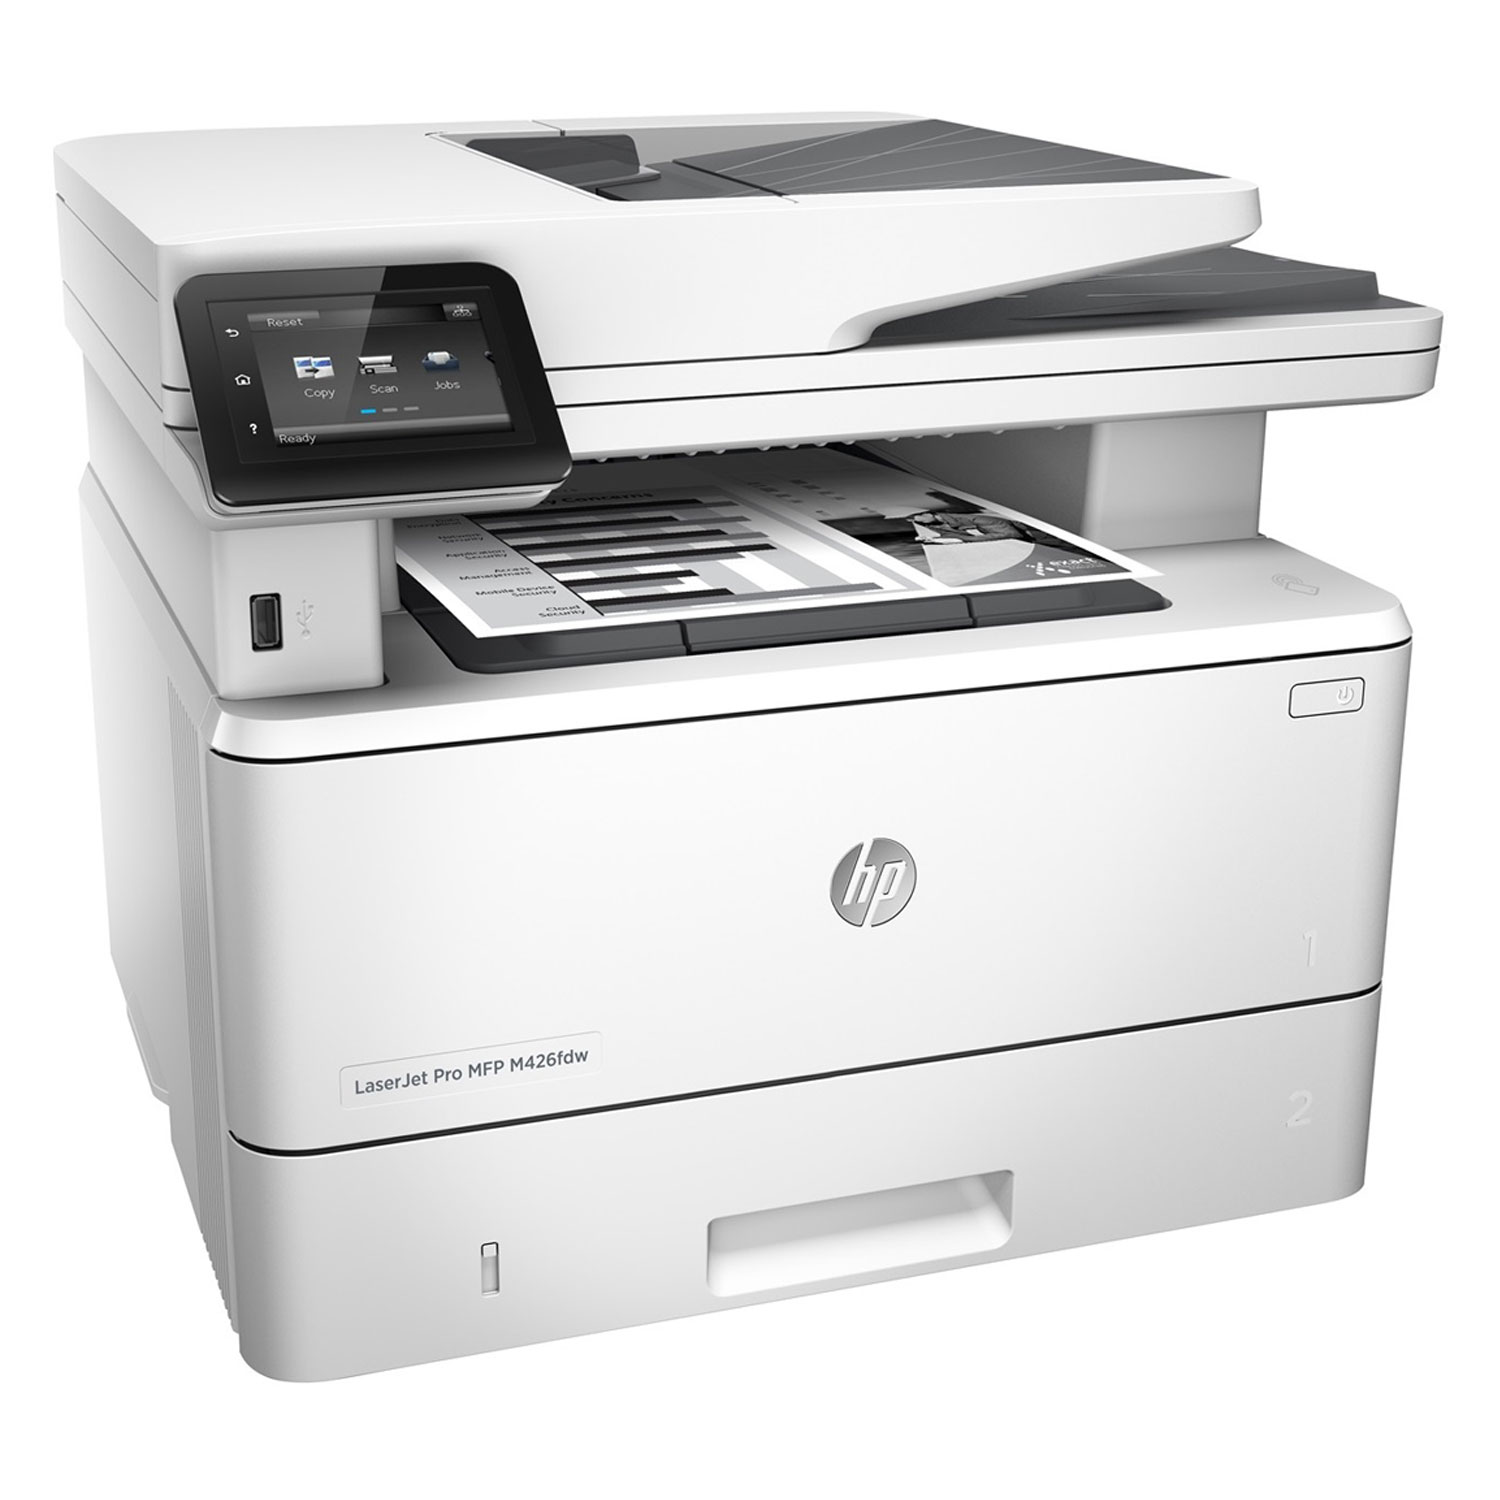 hp laserjet pro 400 m426fdw imprimante multifonction hp sur. Black Bedroom Furniture Sets. Home Design Ideas